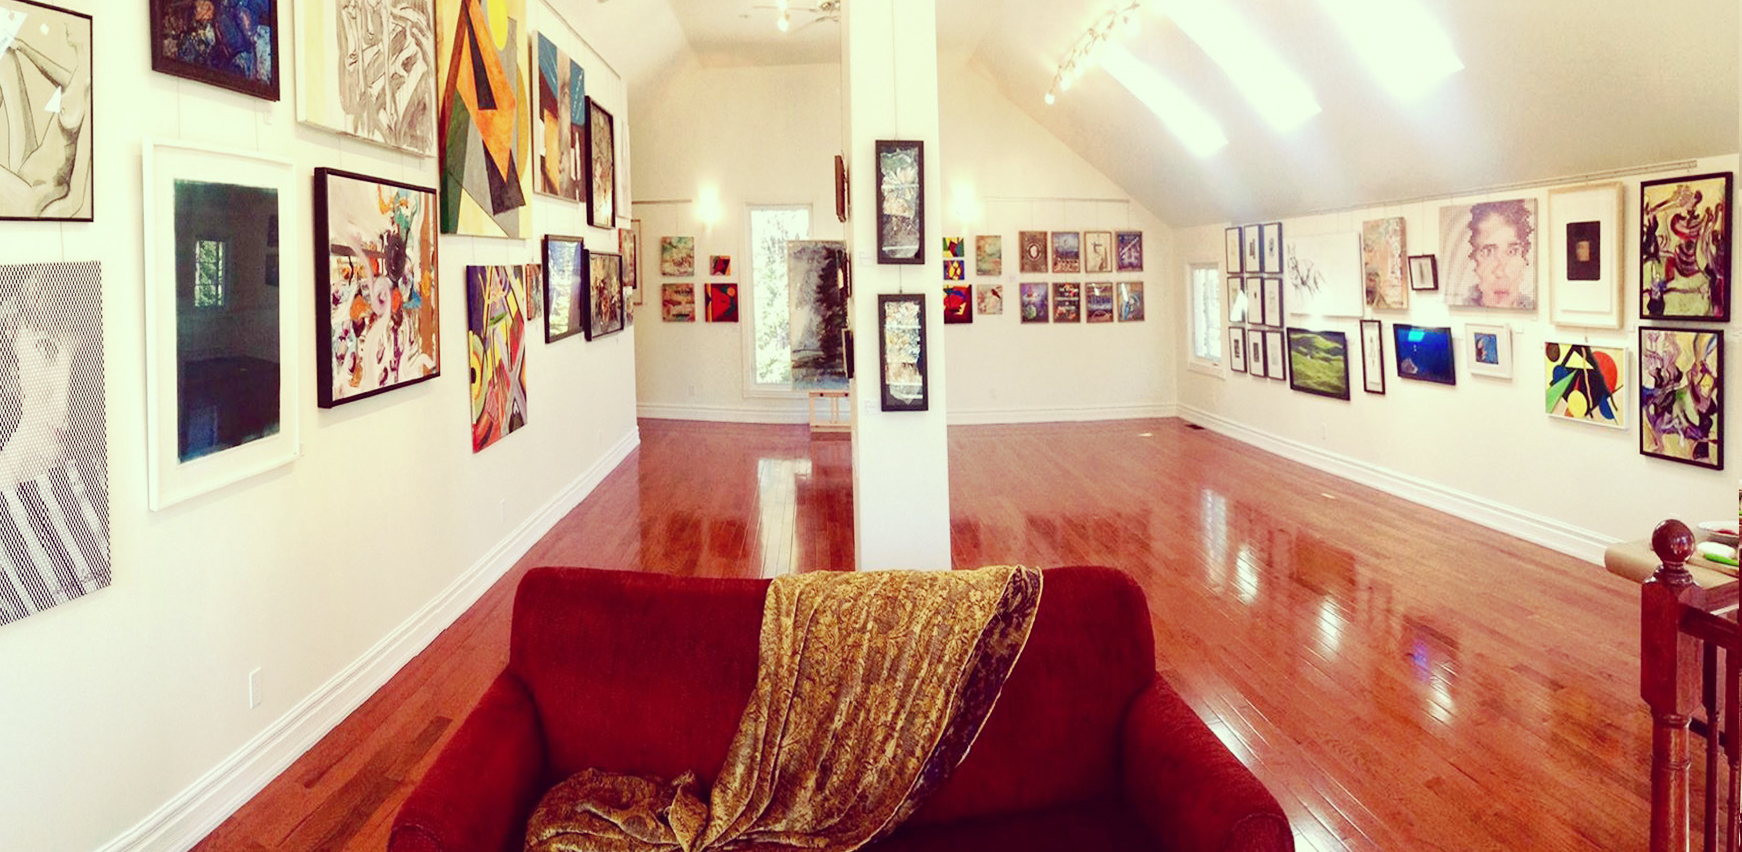 The stunning space in Blue Rain Gallery